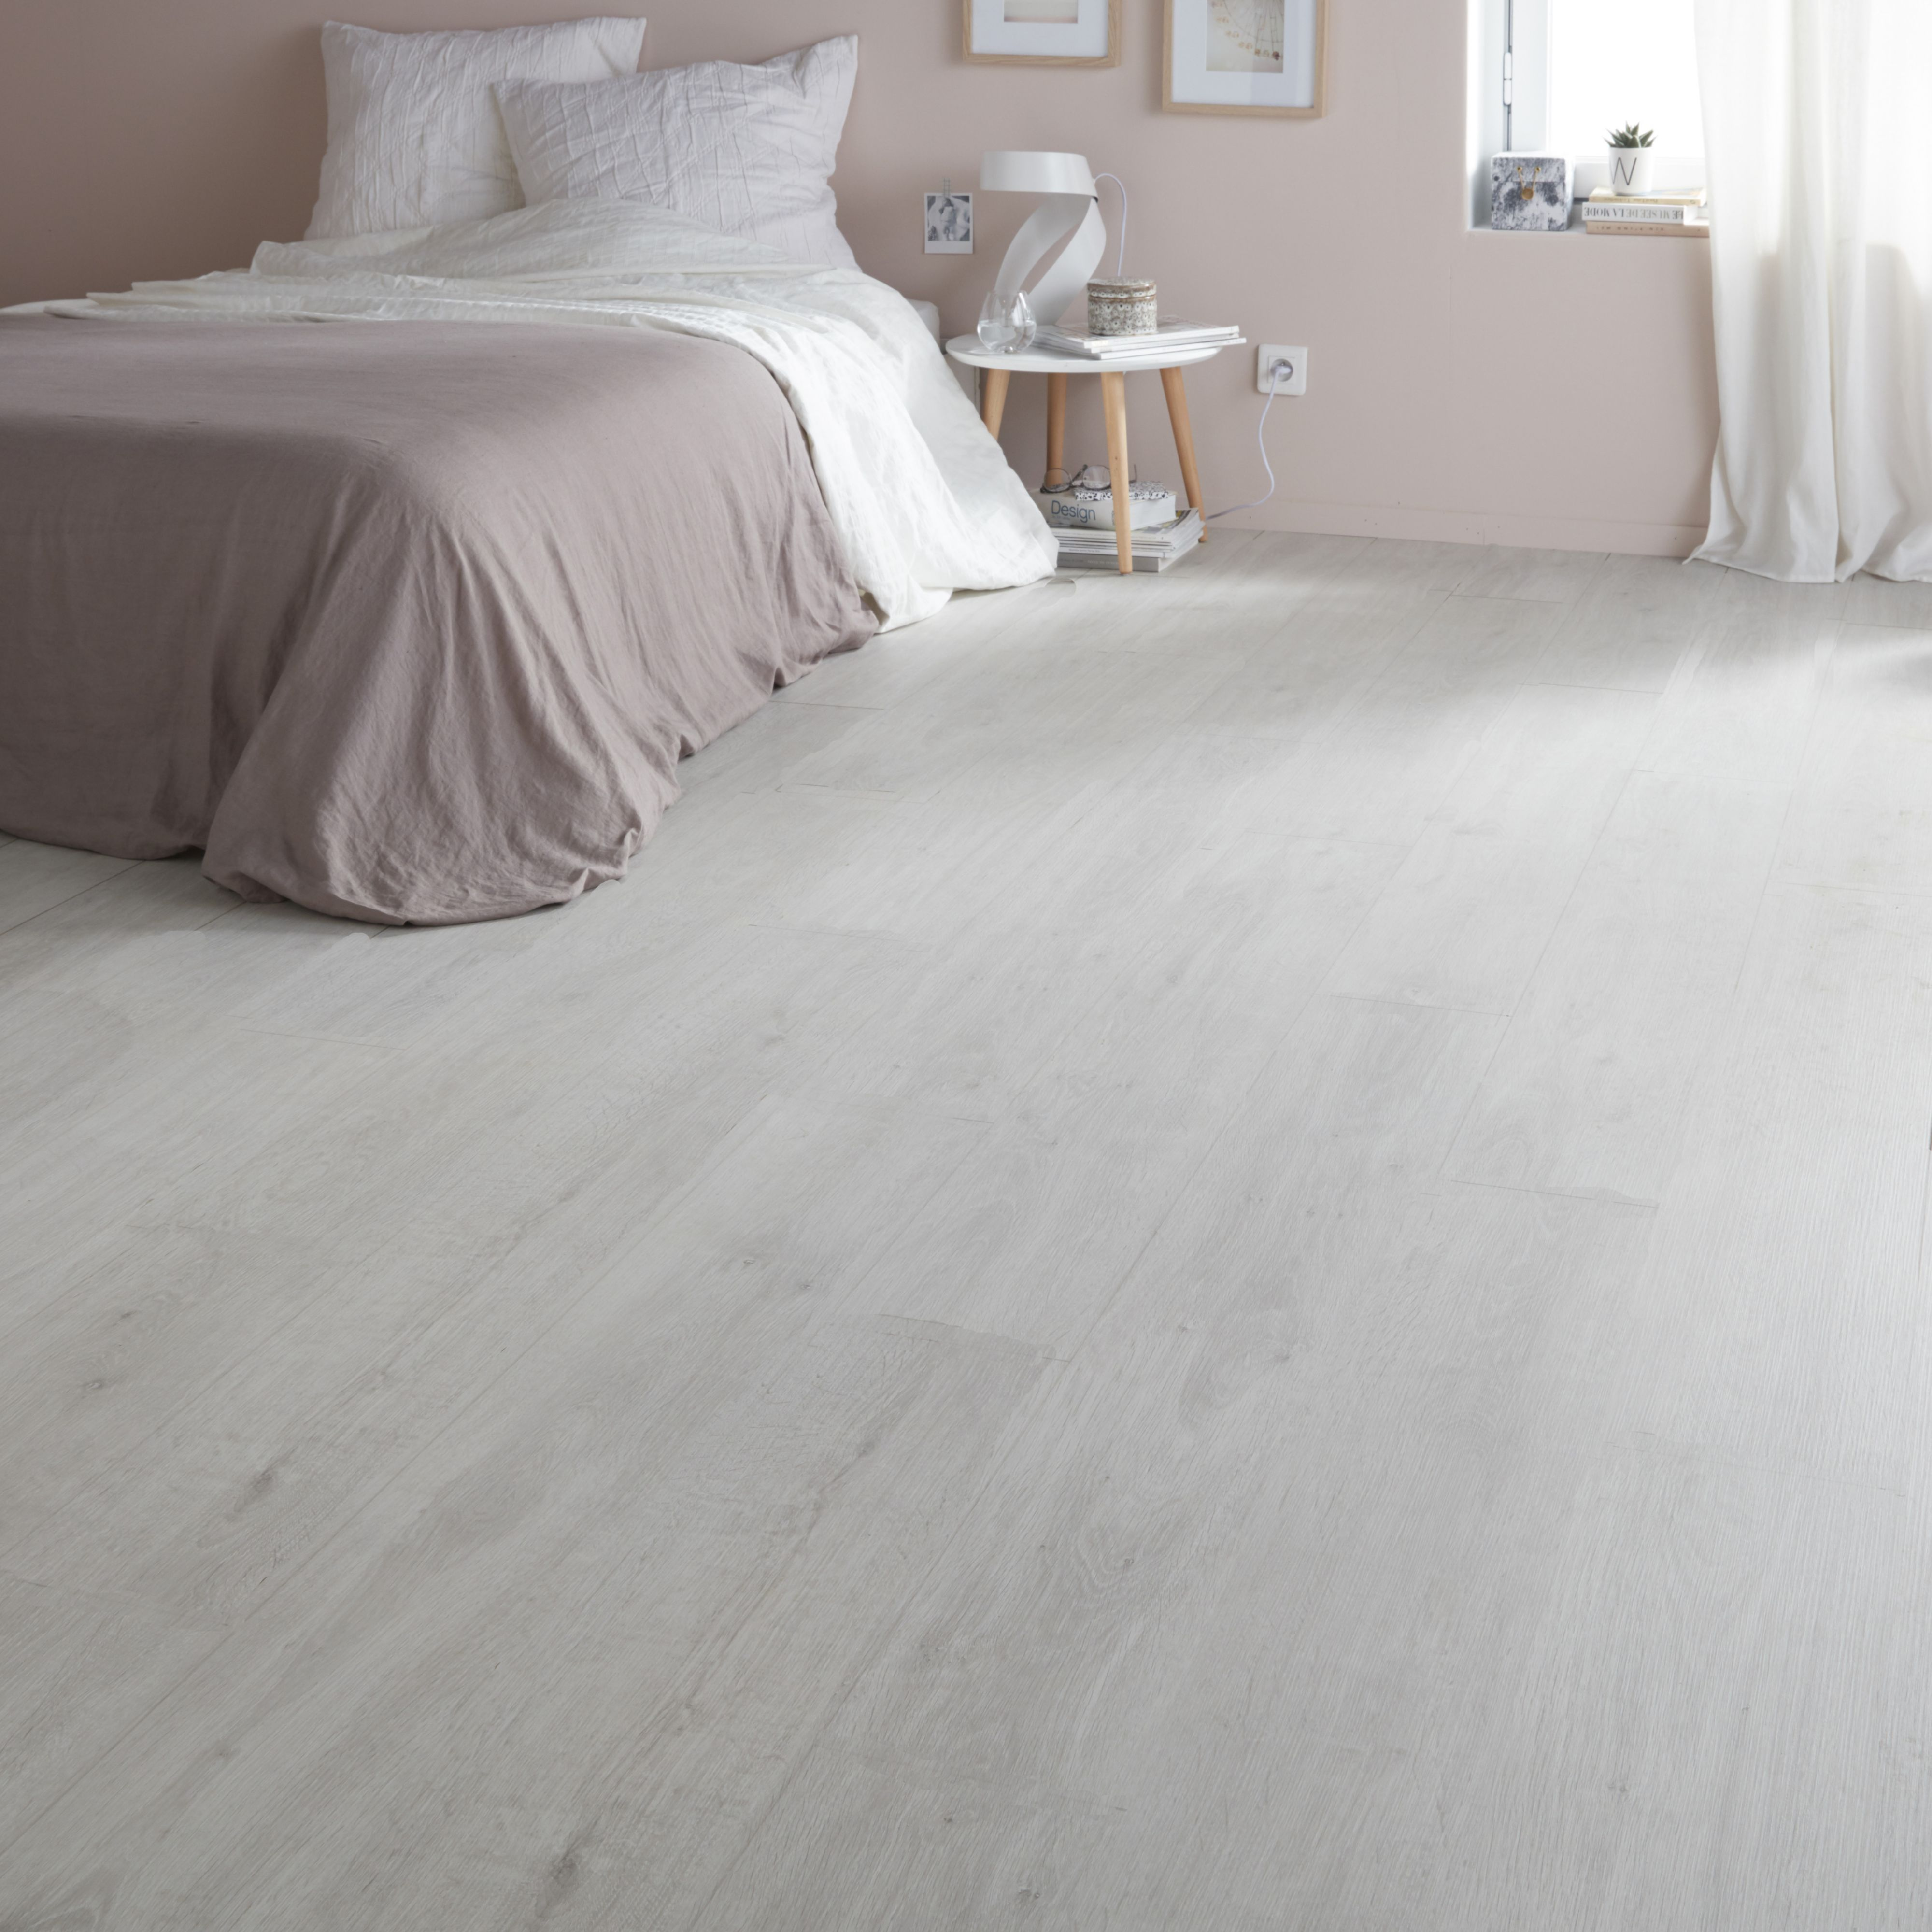 geelong grey oak effect laminate flooring sample. Black Bedroom Furniture Sets. Home Design Ideas